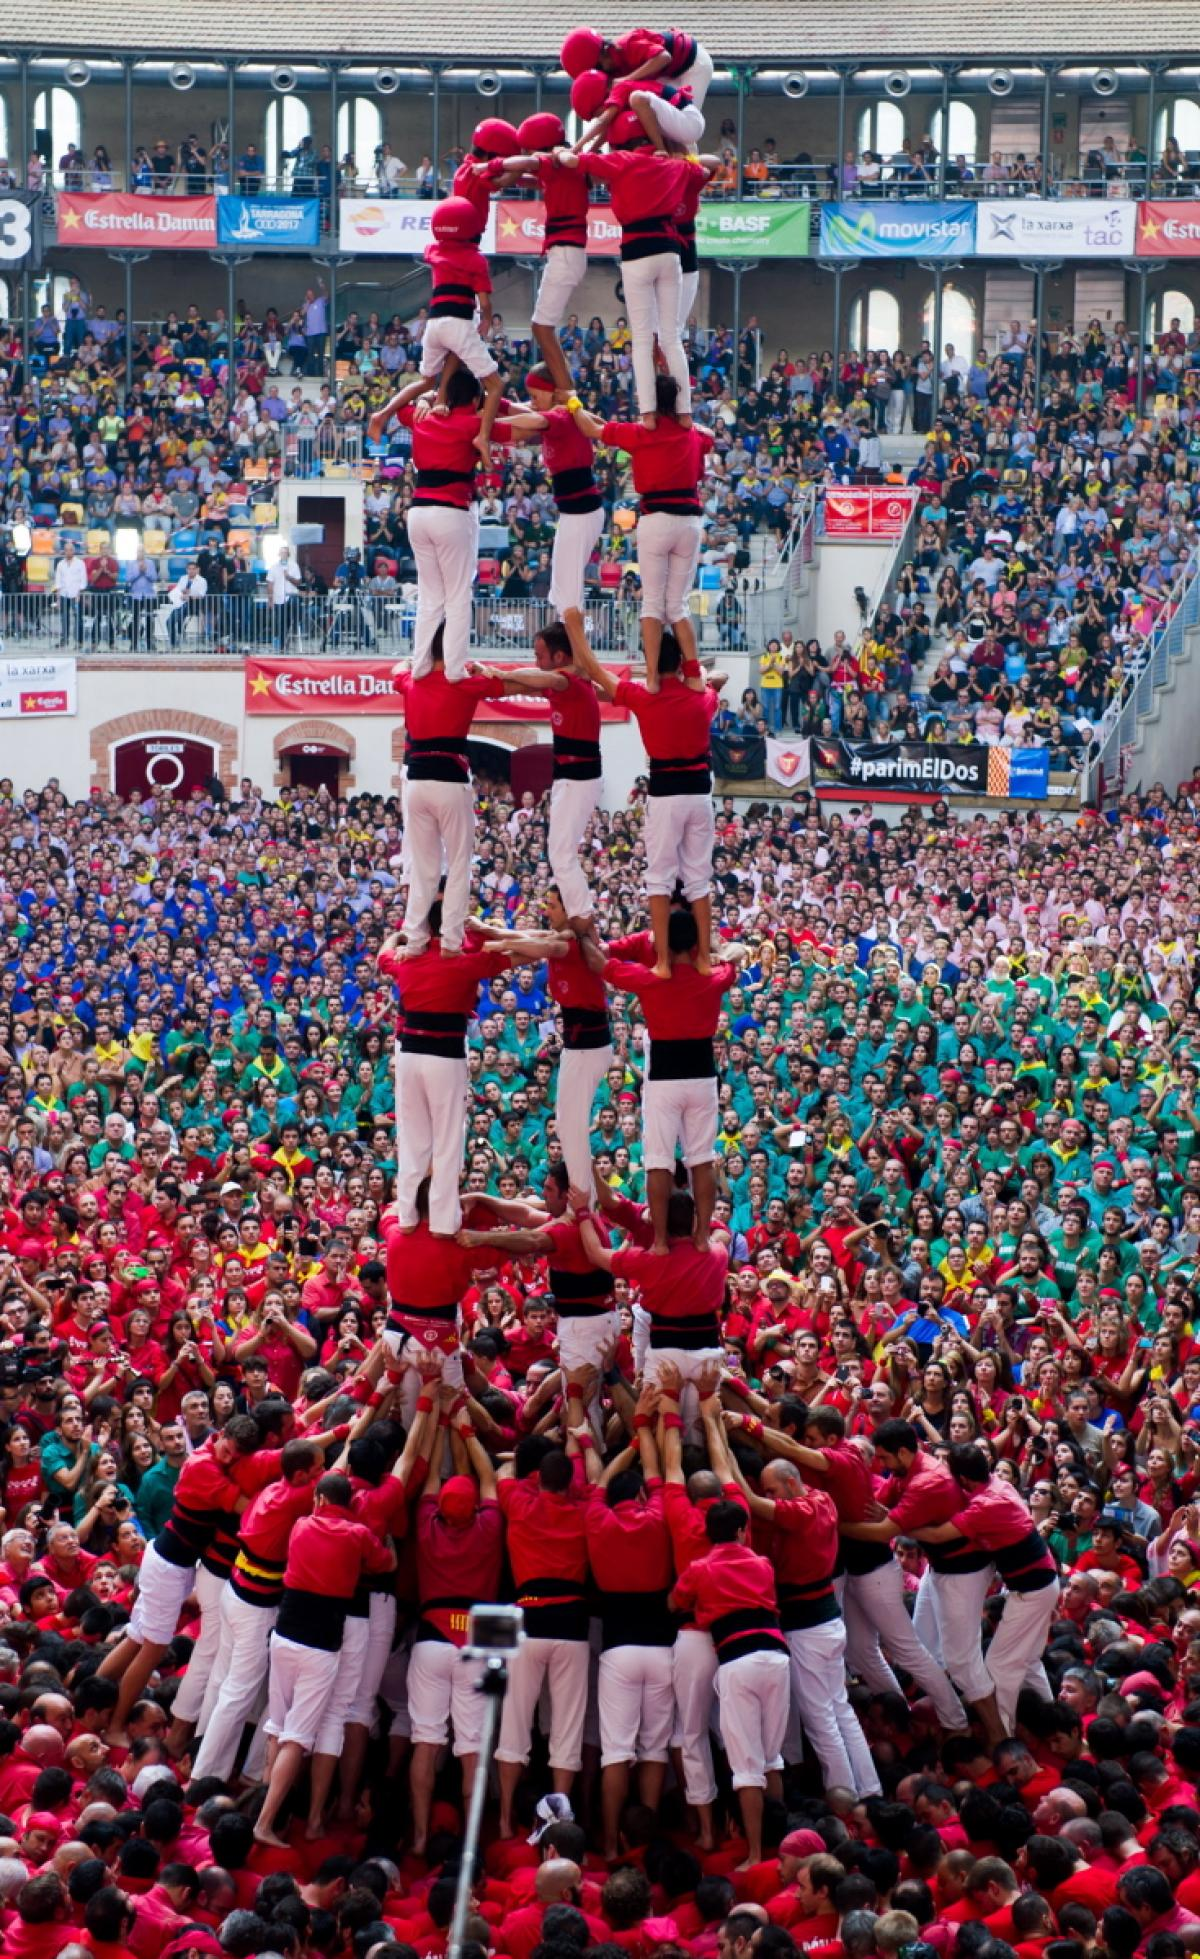 human-tower-competition-spain.jpg